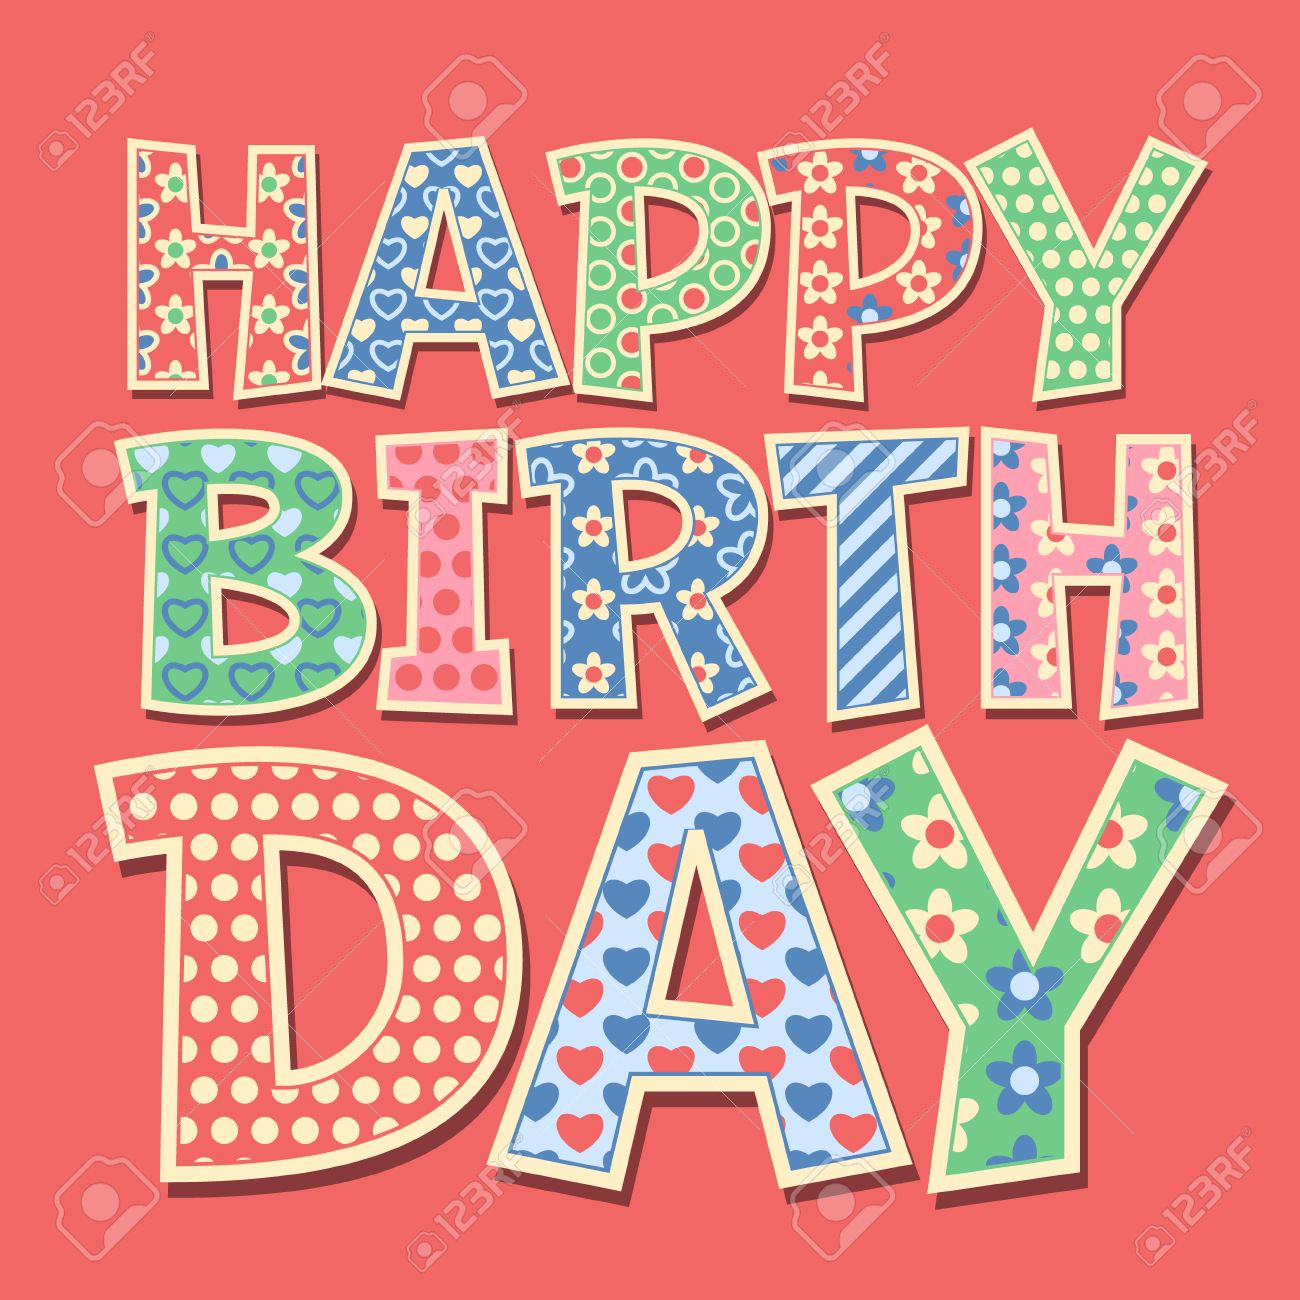 Happy birthday vector card with redneck style letters royalty free happy birthday vector card with redneck style letters stock vector 45571053 bookmarktalkfo Choice Image